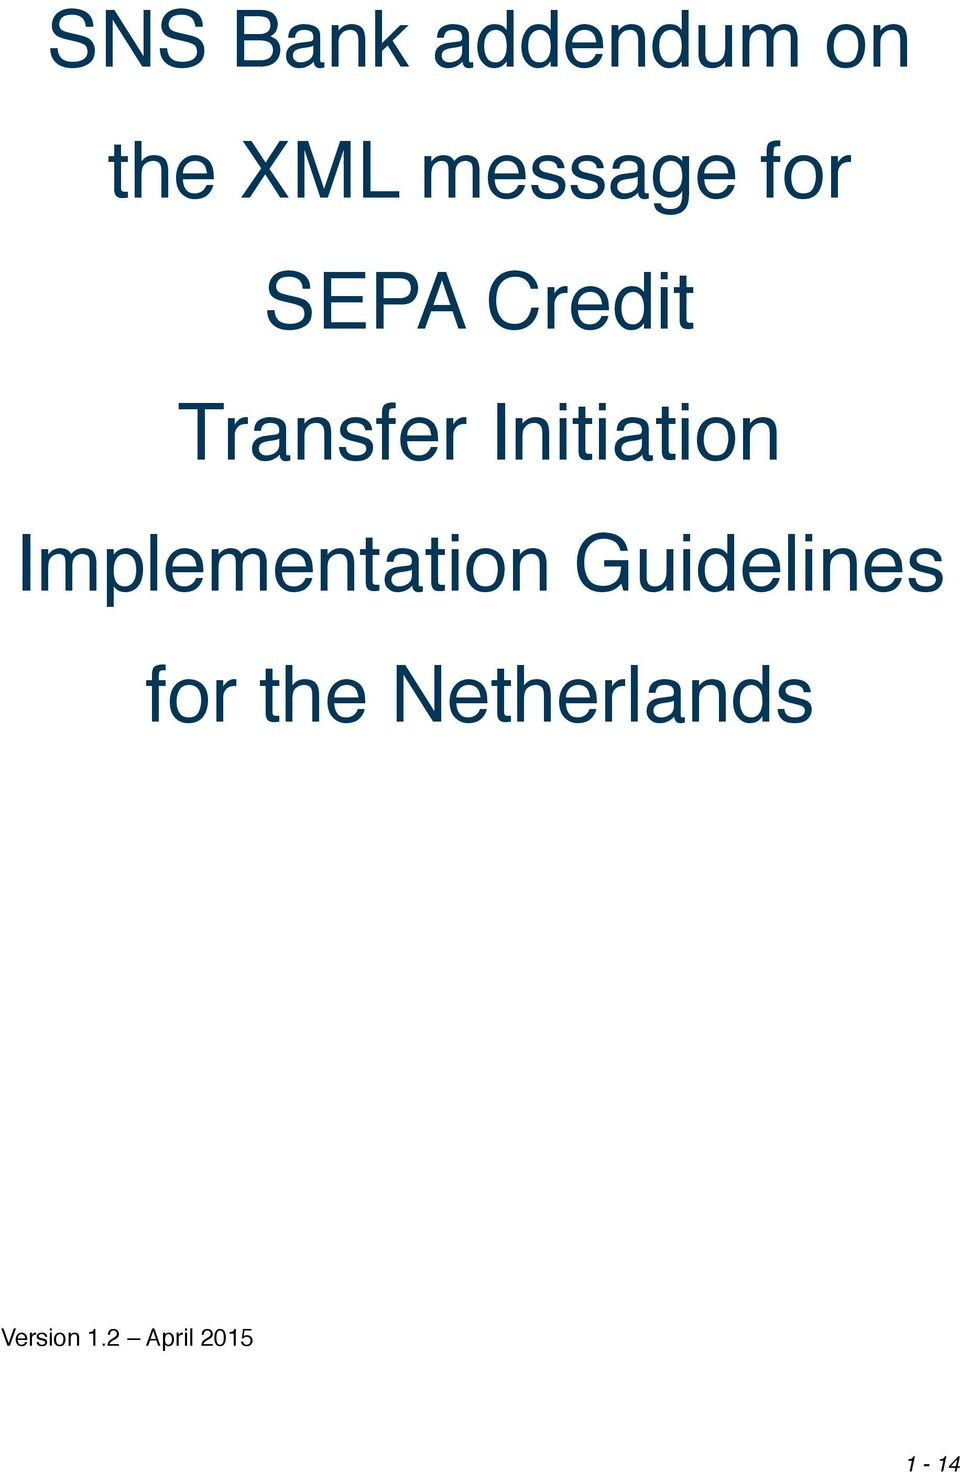 Implementation Guidelines for the